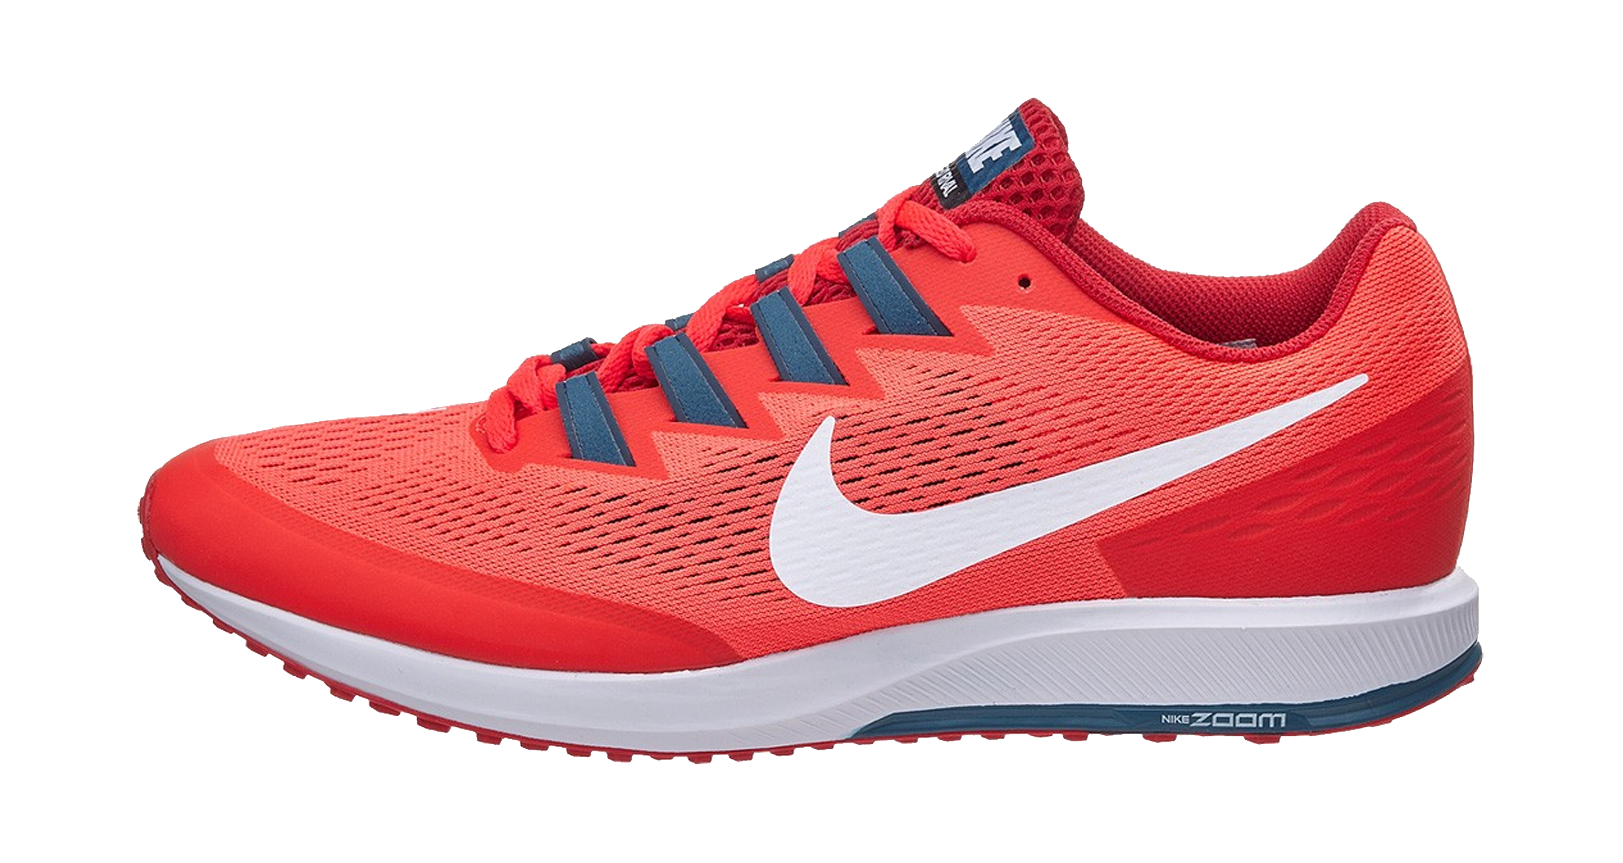 Campanilla Sacrificio Magnético  Nike Zoom Speed Rival 6 Running Shoe Review » Believe in the Run